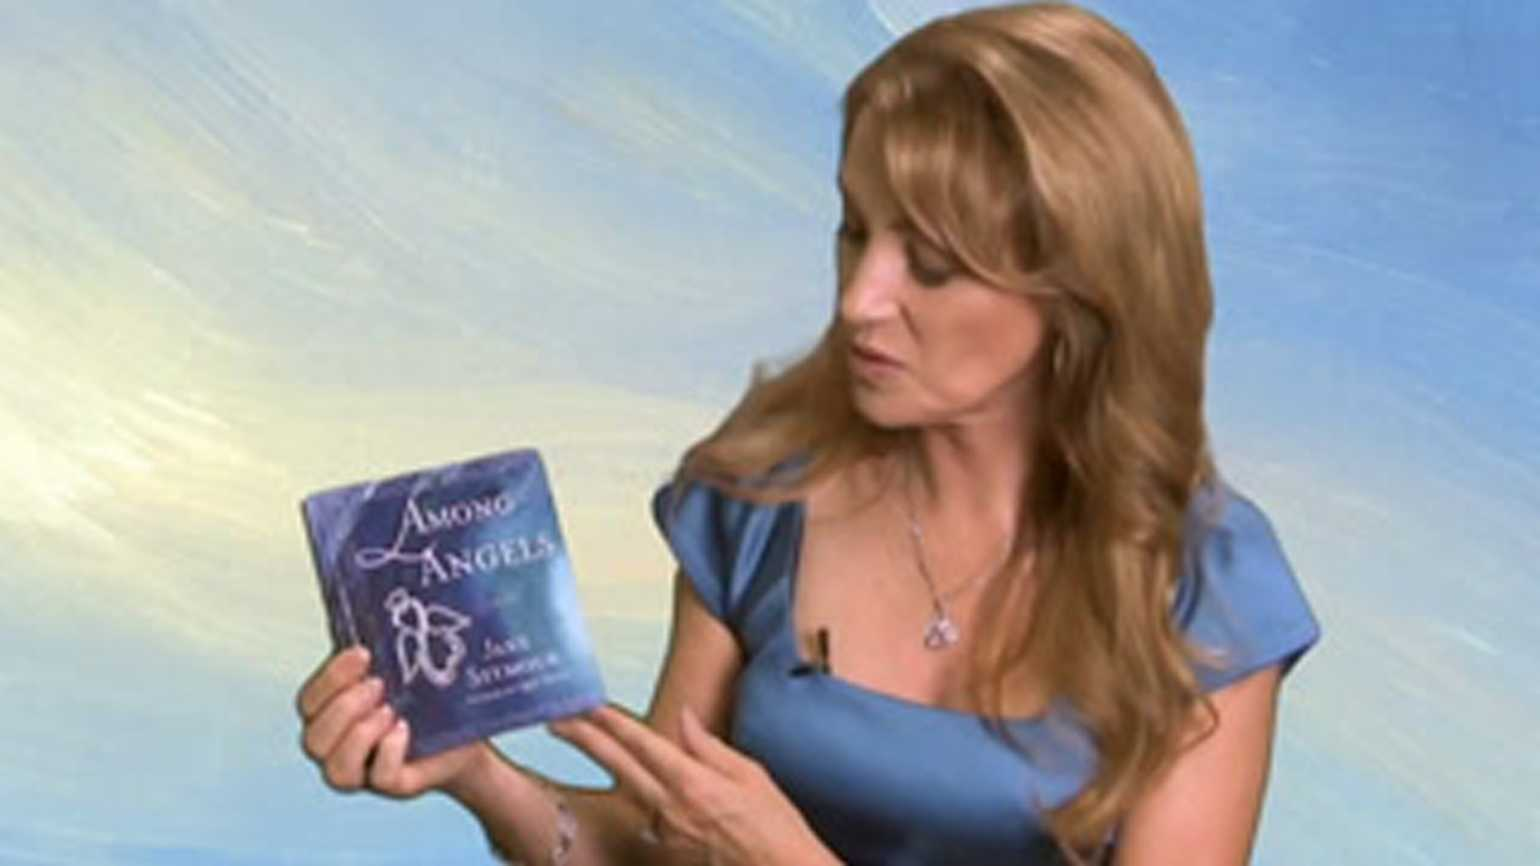 Interview with the Author: Jane Seymour on Her Book, 'Among Angels'